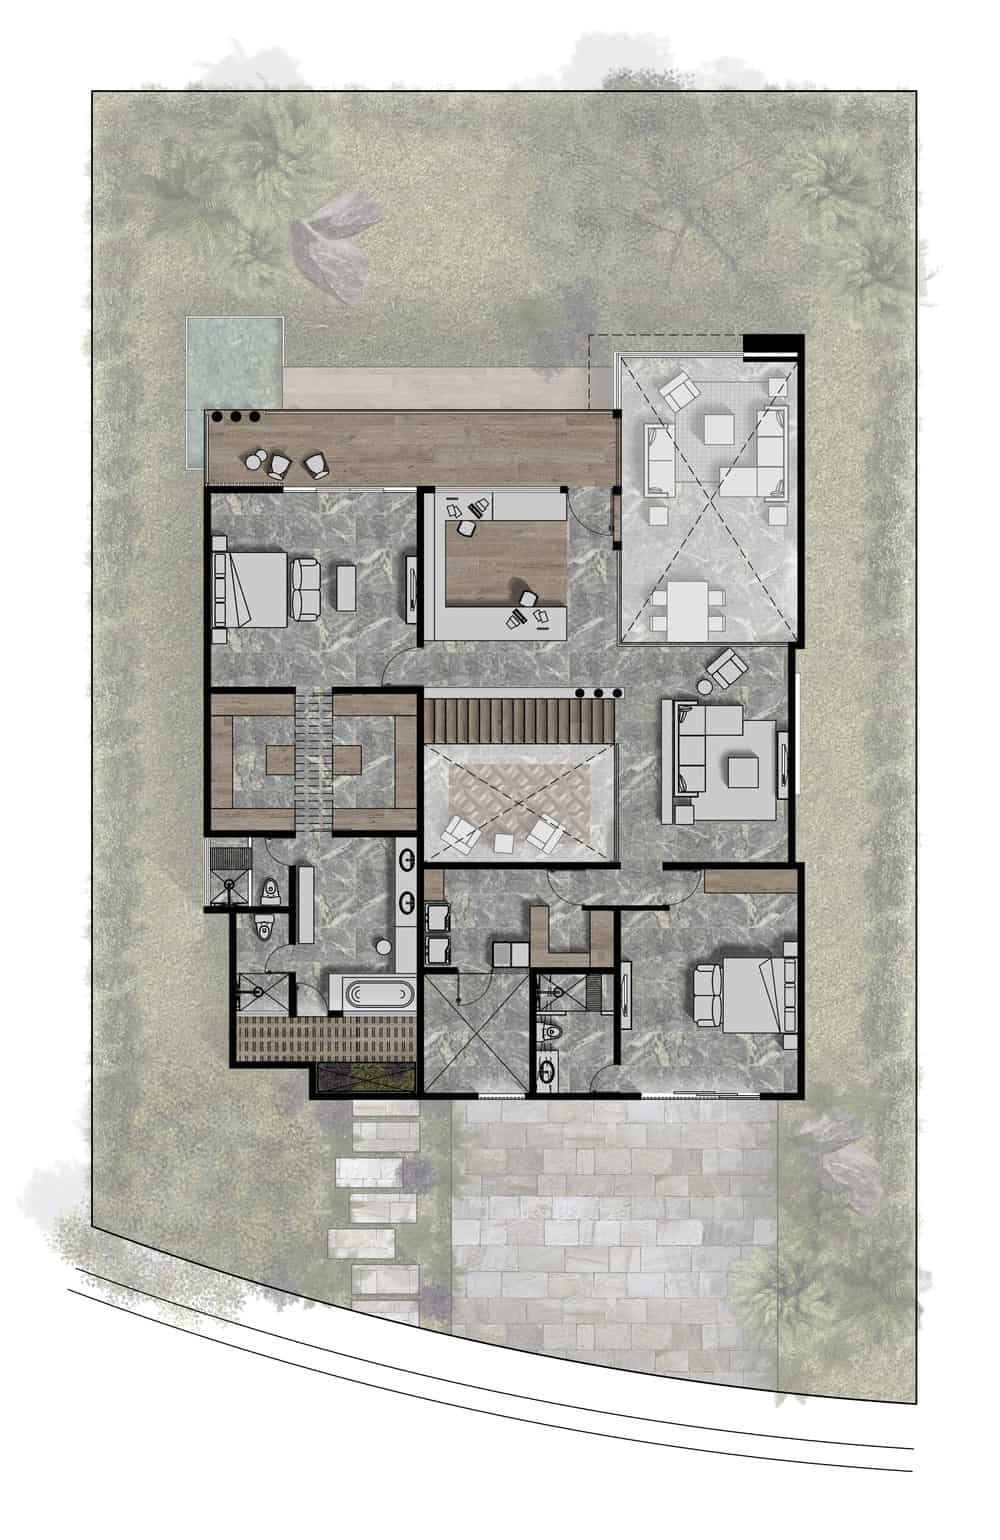 This is an illustration of the second level floor plan of the house featuring the different sections.